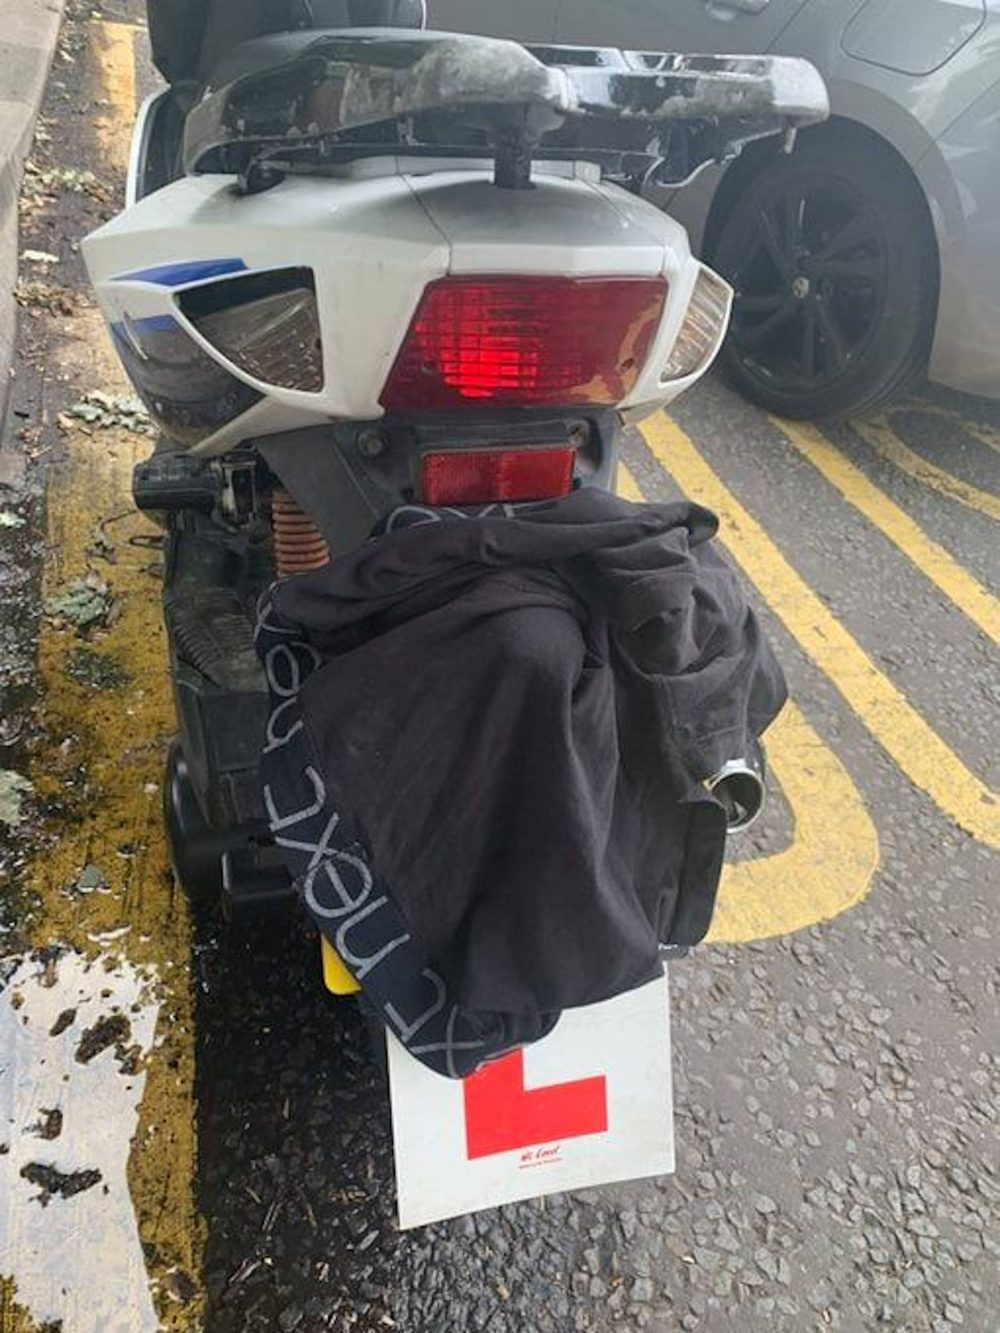 Moped with boxers covering number plate | Traffic News UK